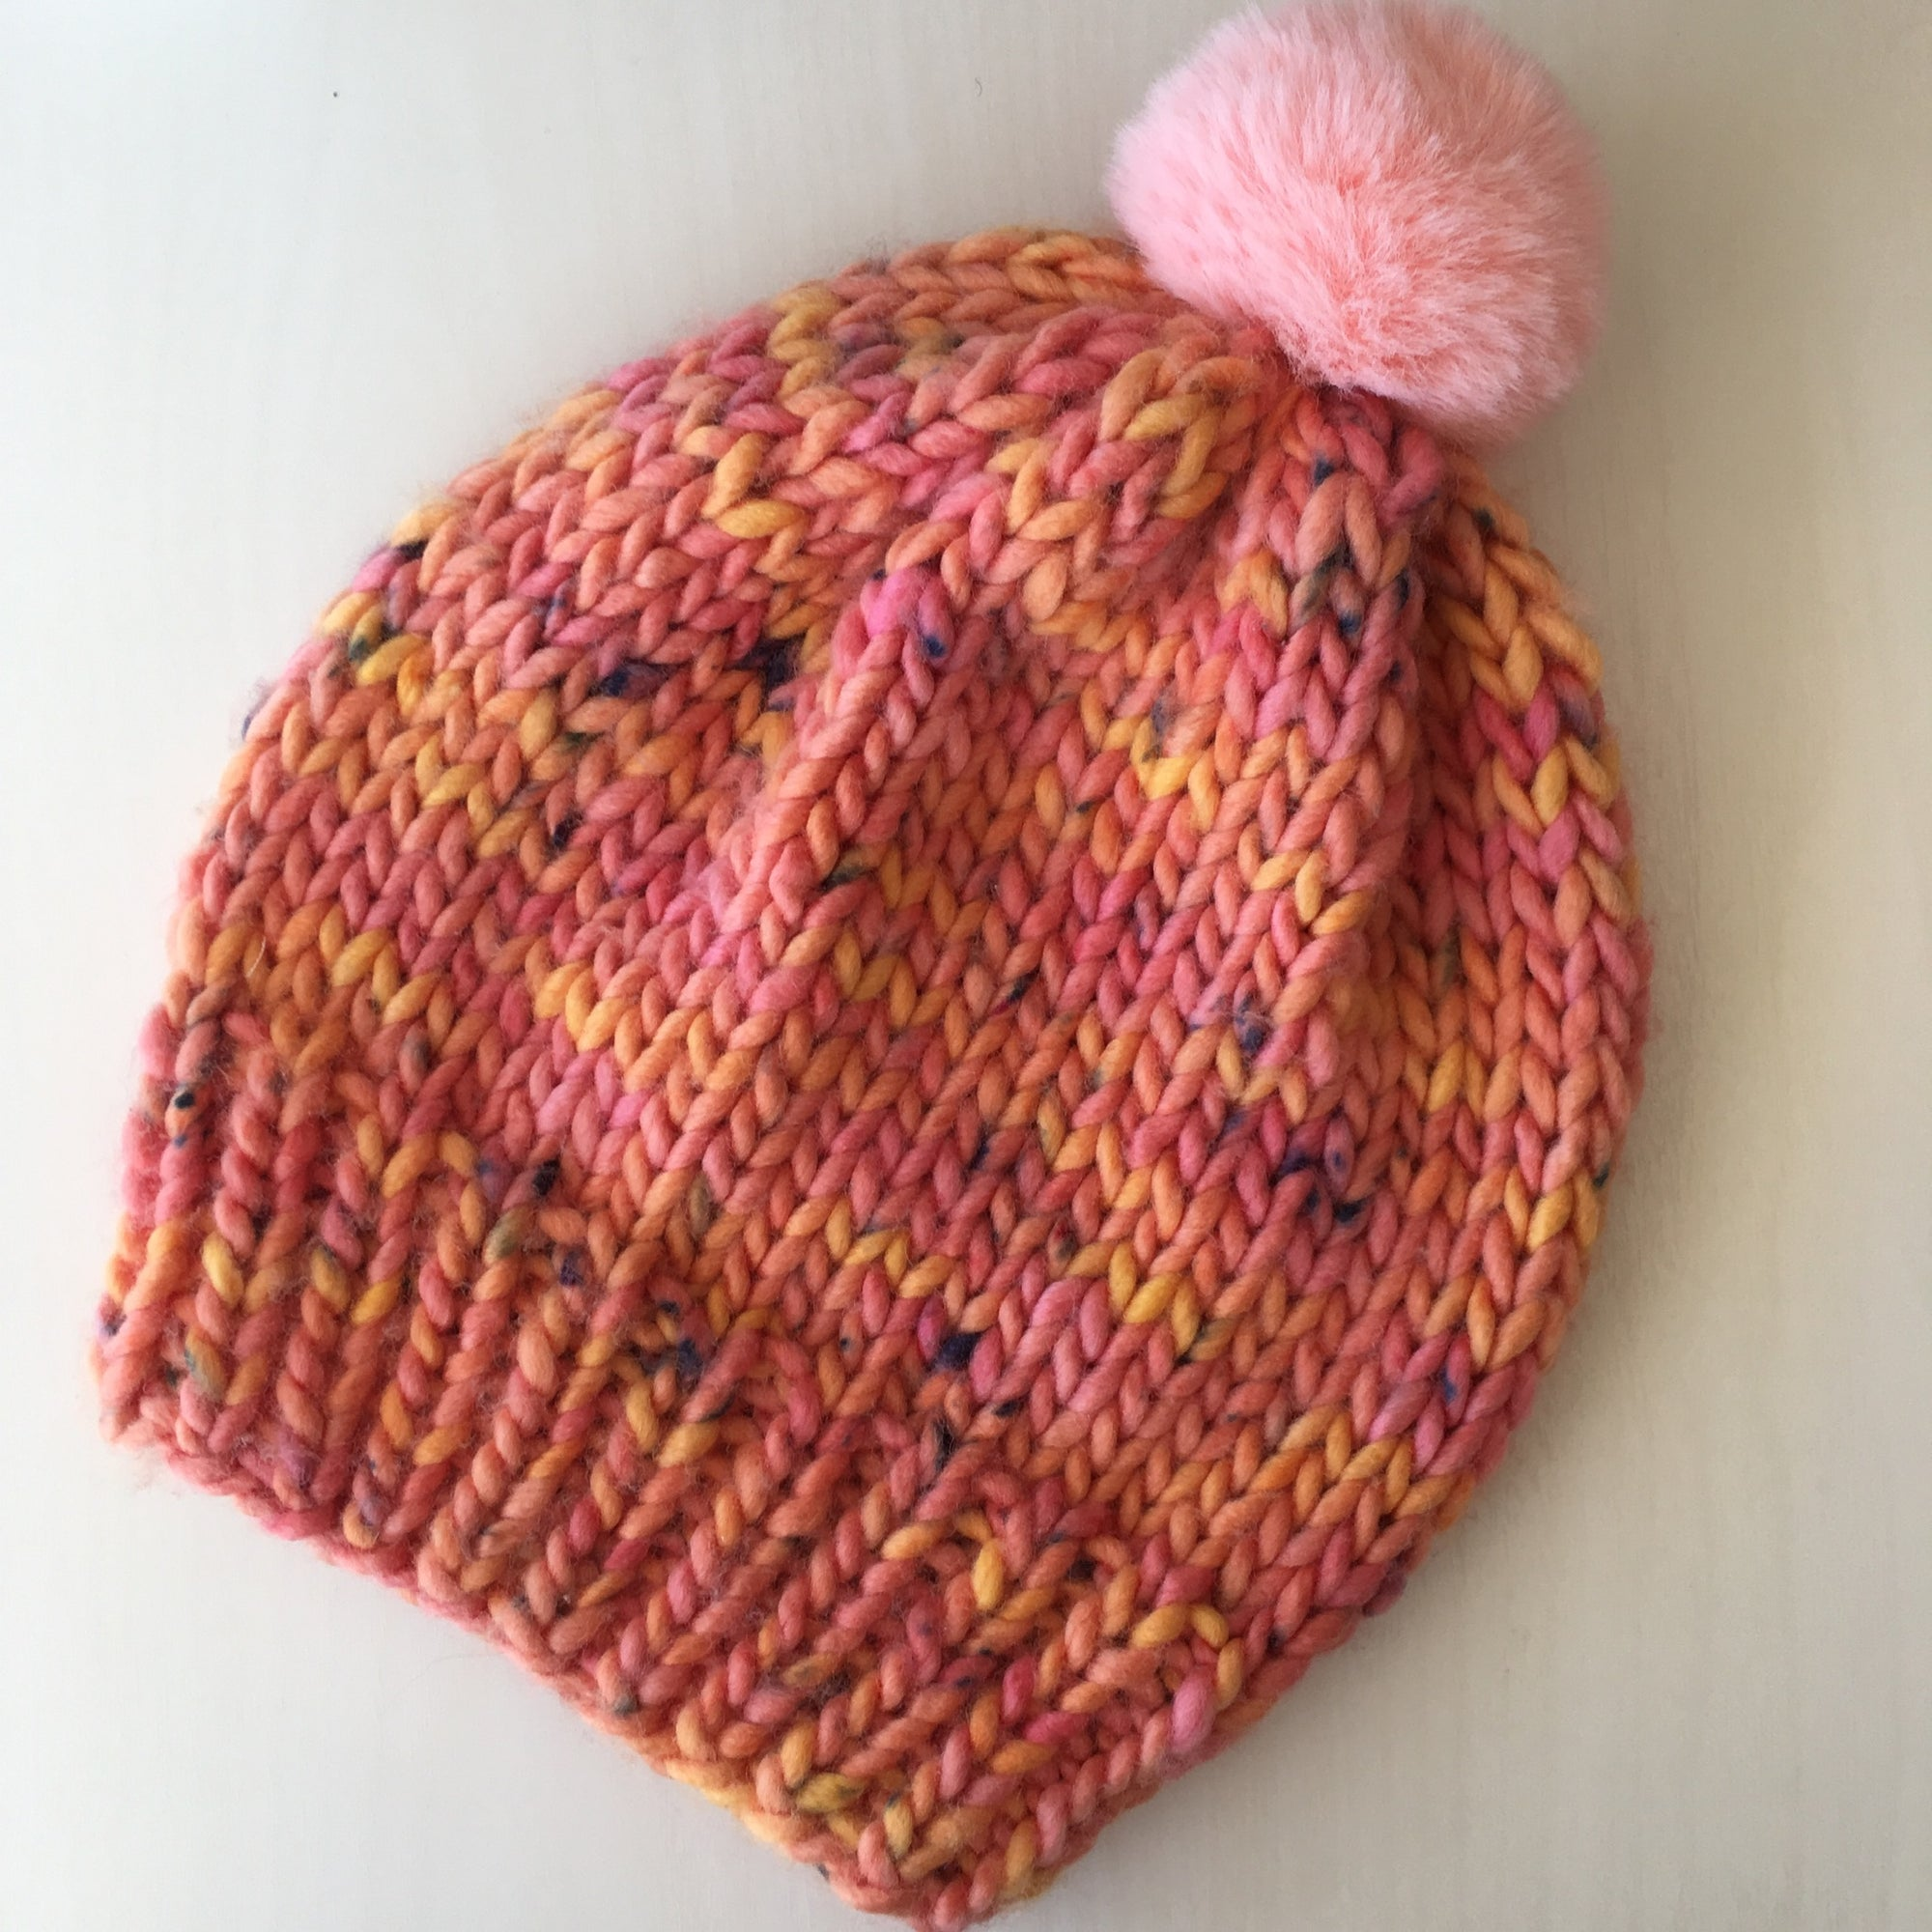 Knitting 102: Big Wool Hat 02/02 + 02/16